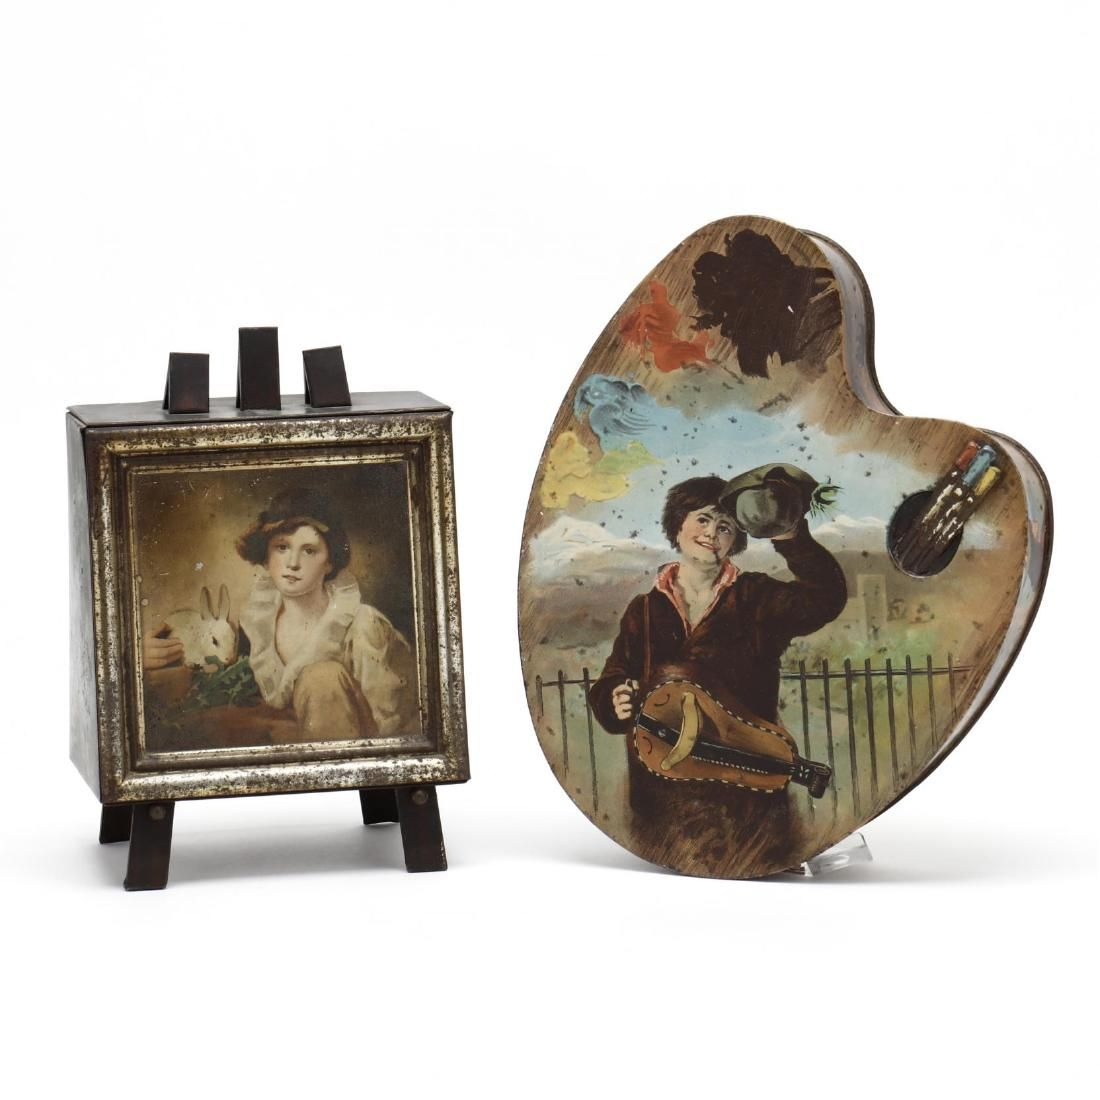 Two Art Related Biscuit Tins